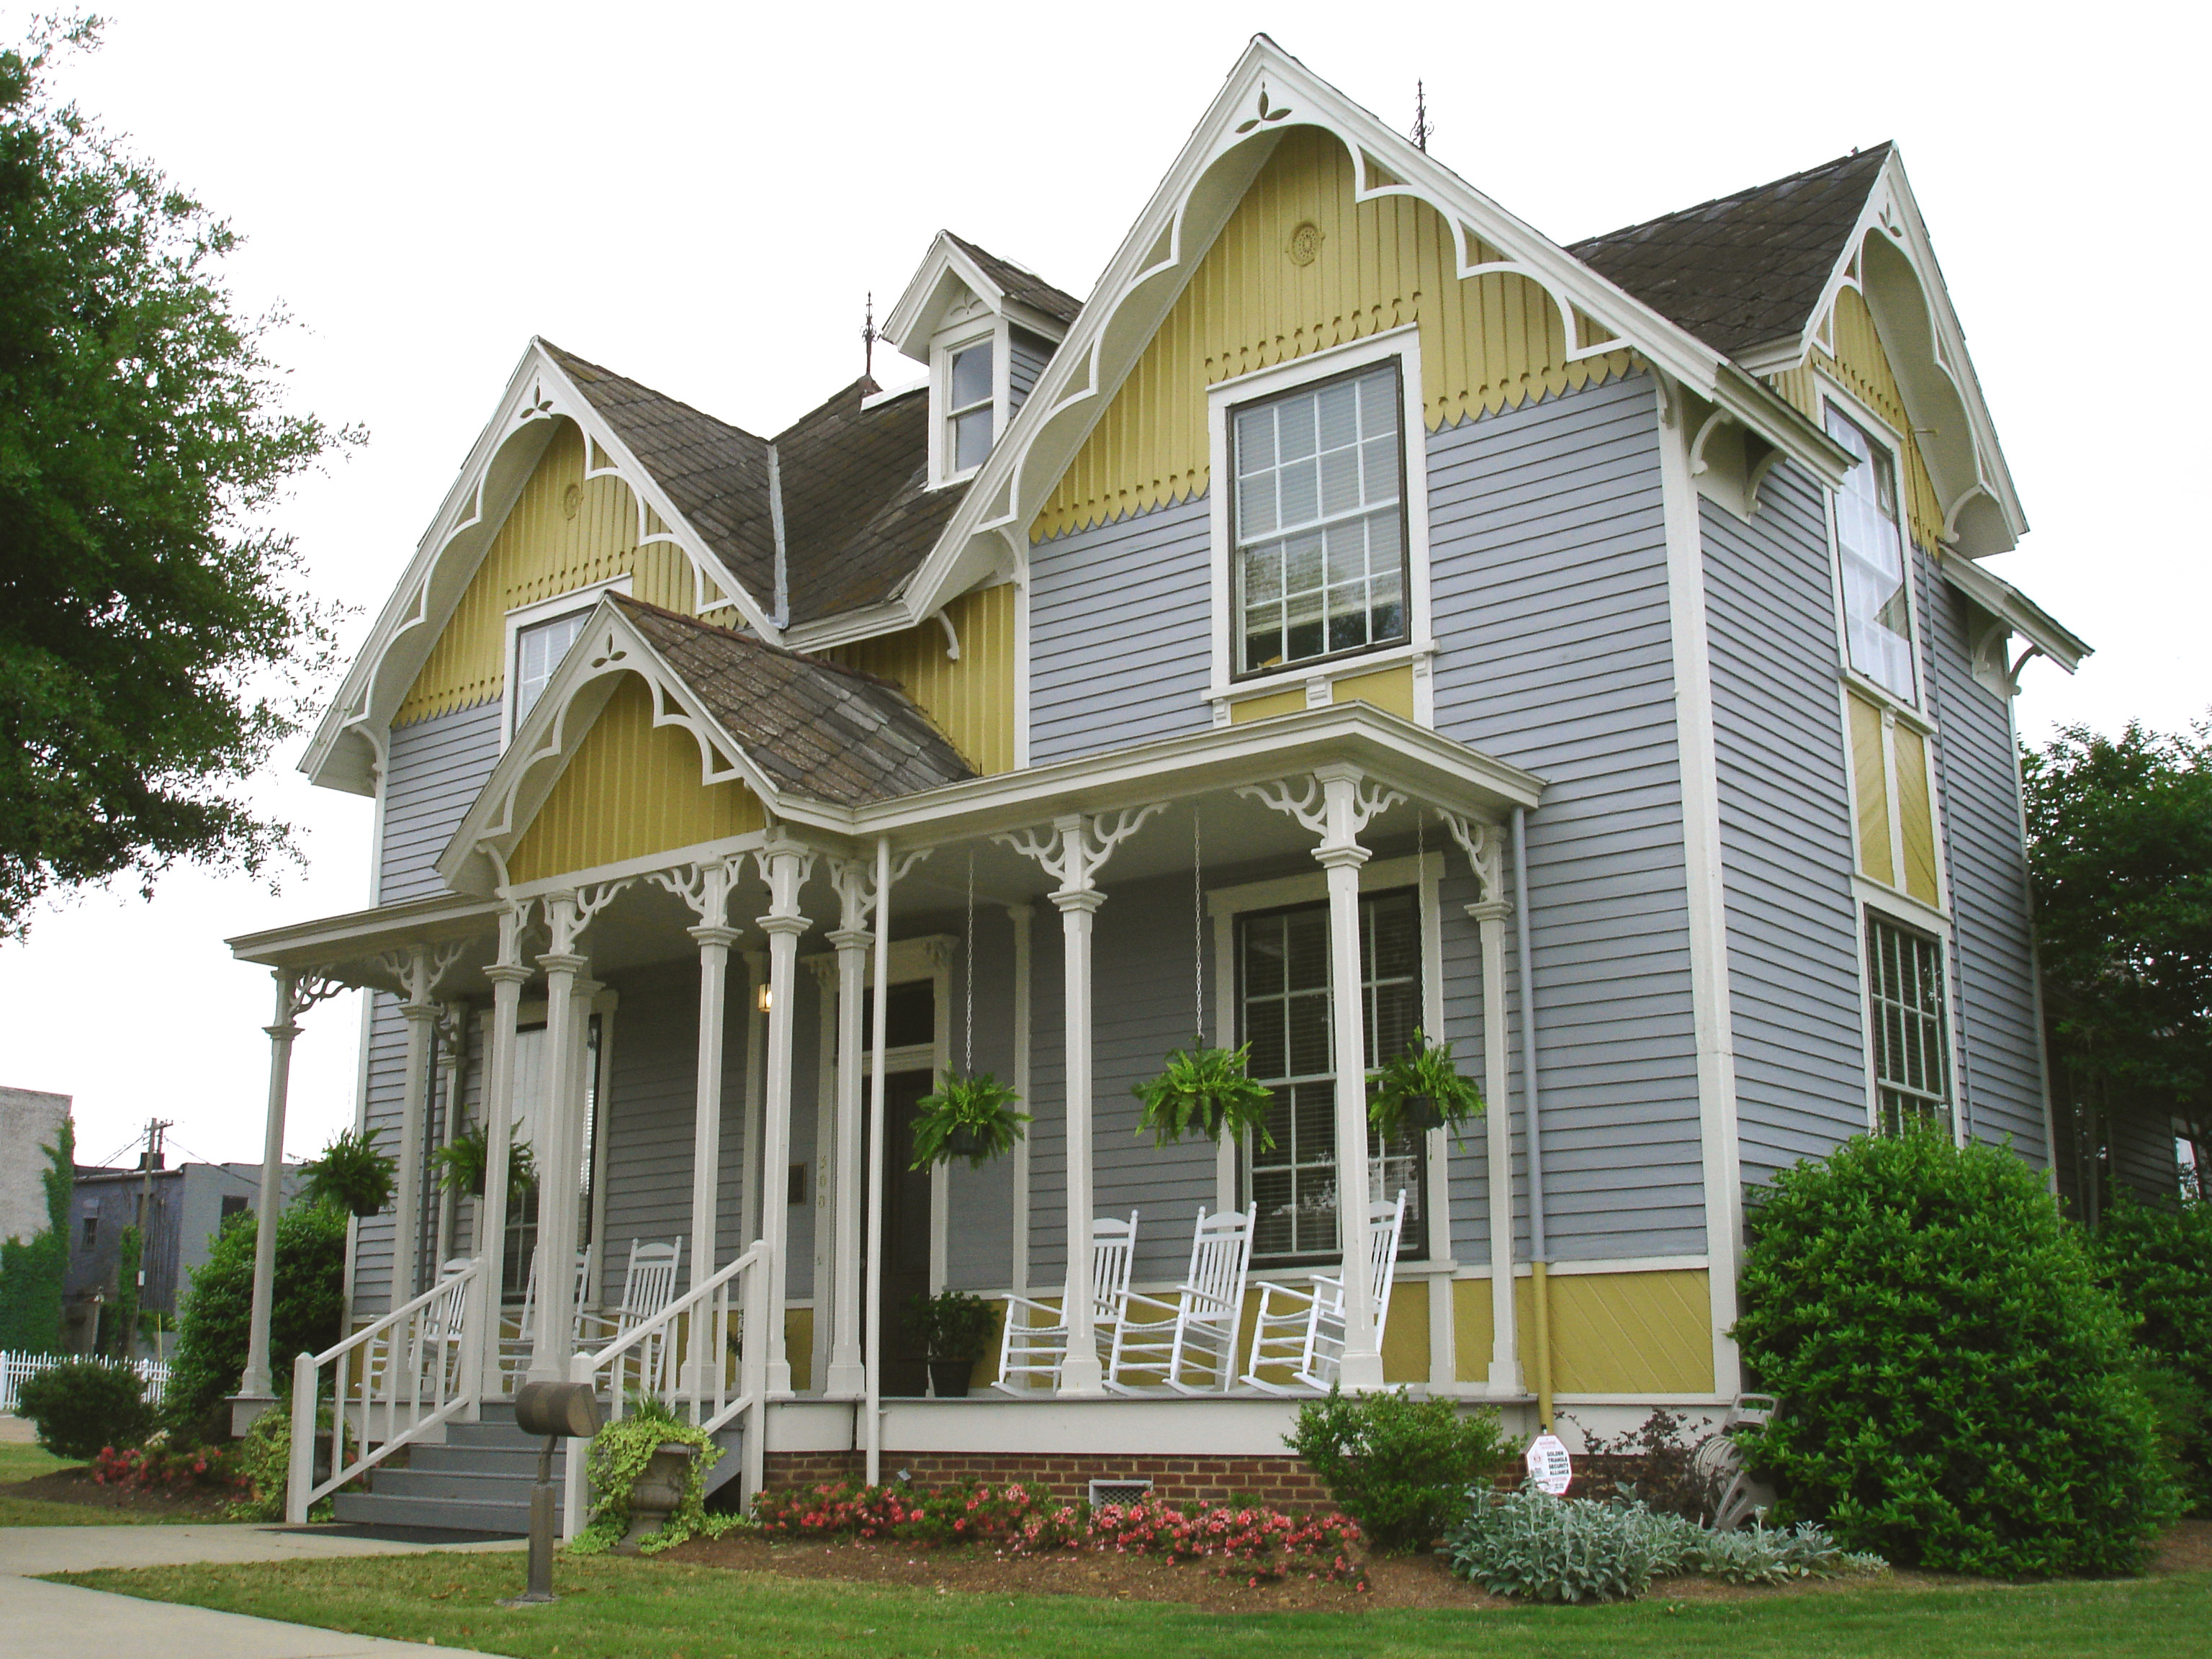 http://caringresourcesinfo.files.wordpress.com/2011/02/tennessee-williams-home-in-columbus-ms_mr1.jpg